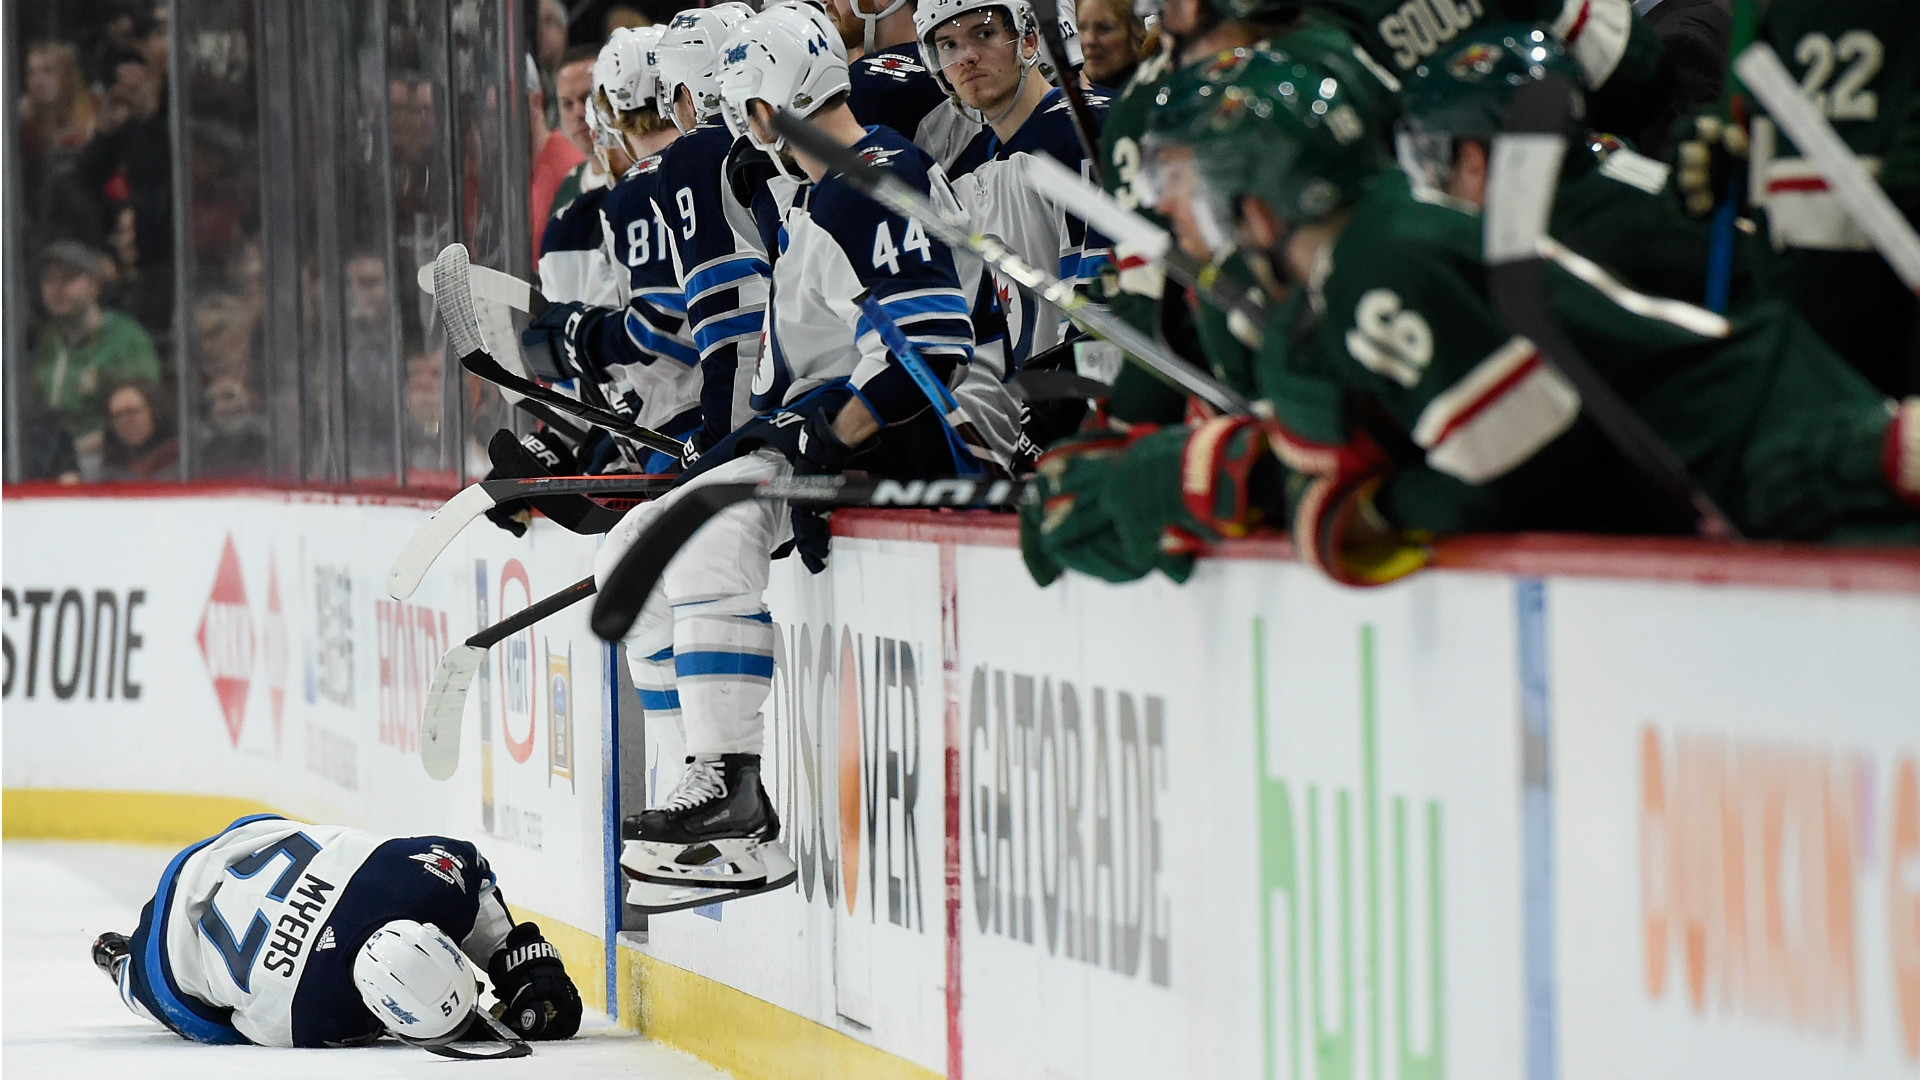 Jets grounded by blizzard, trip for Game 3 delayed